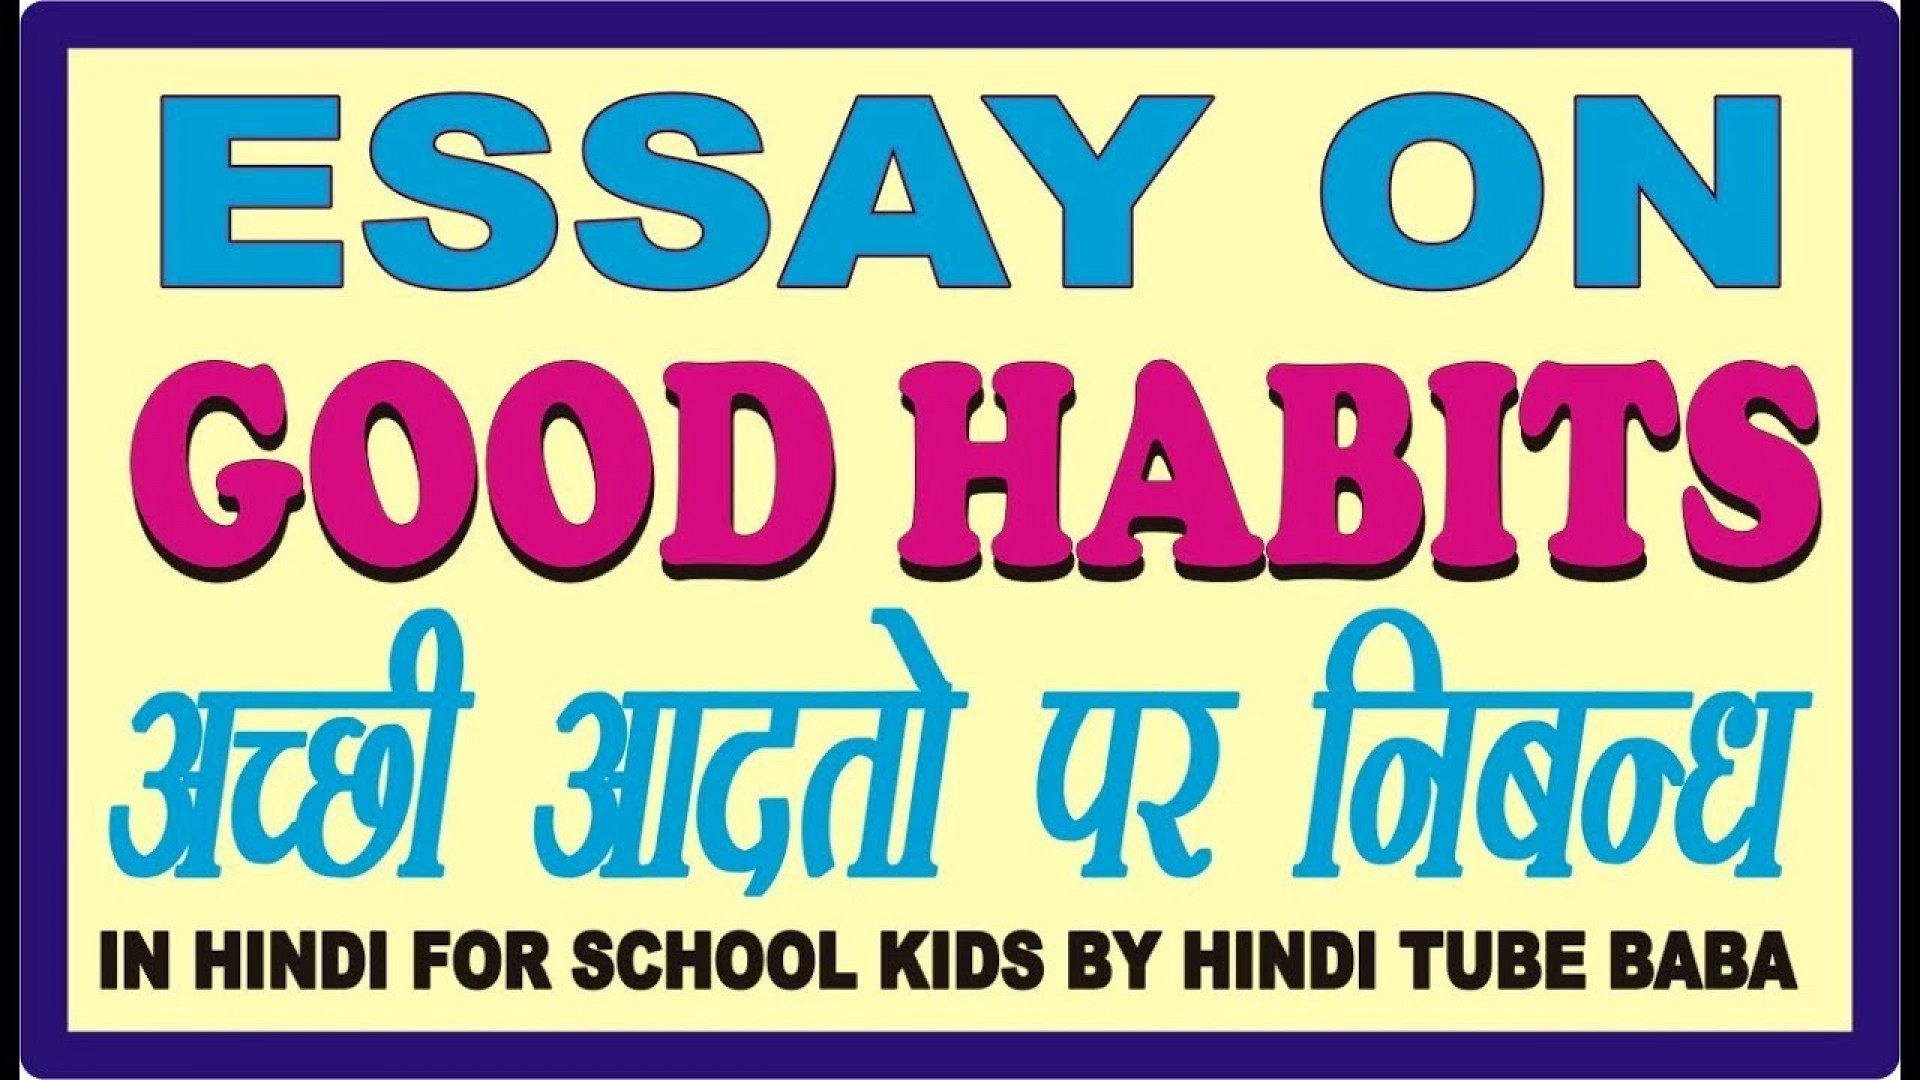 006 Good Habits Essay In Hindi Maxresdefault Exceptional And Bad Healthy Eating 1920